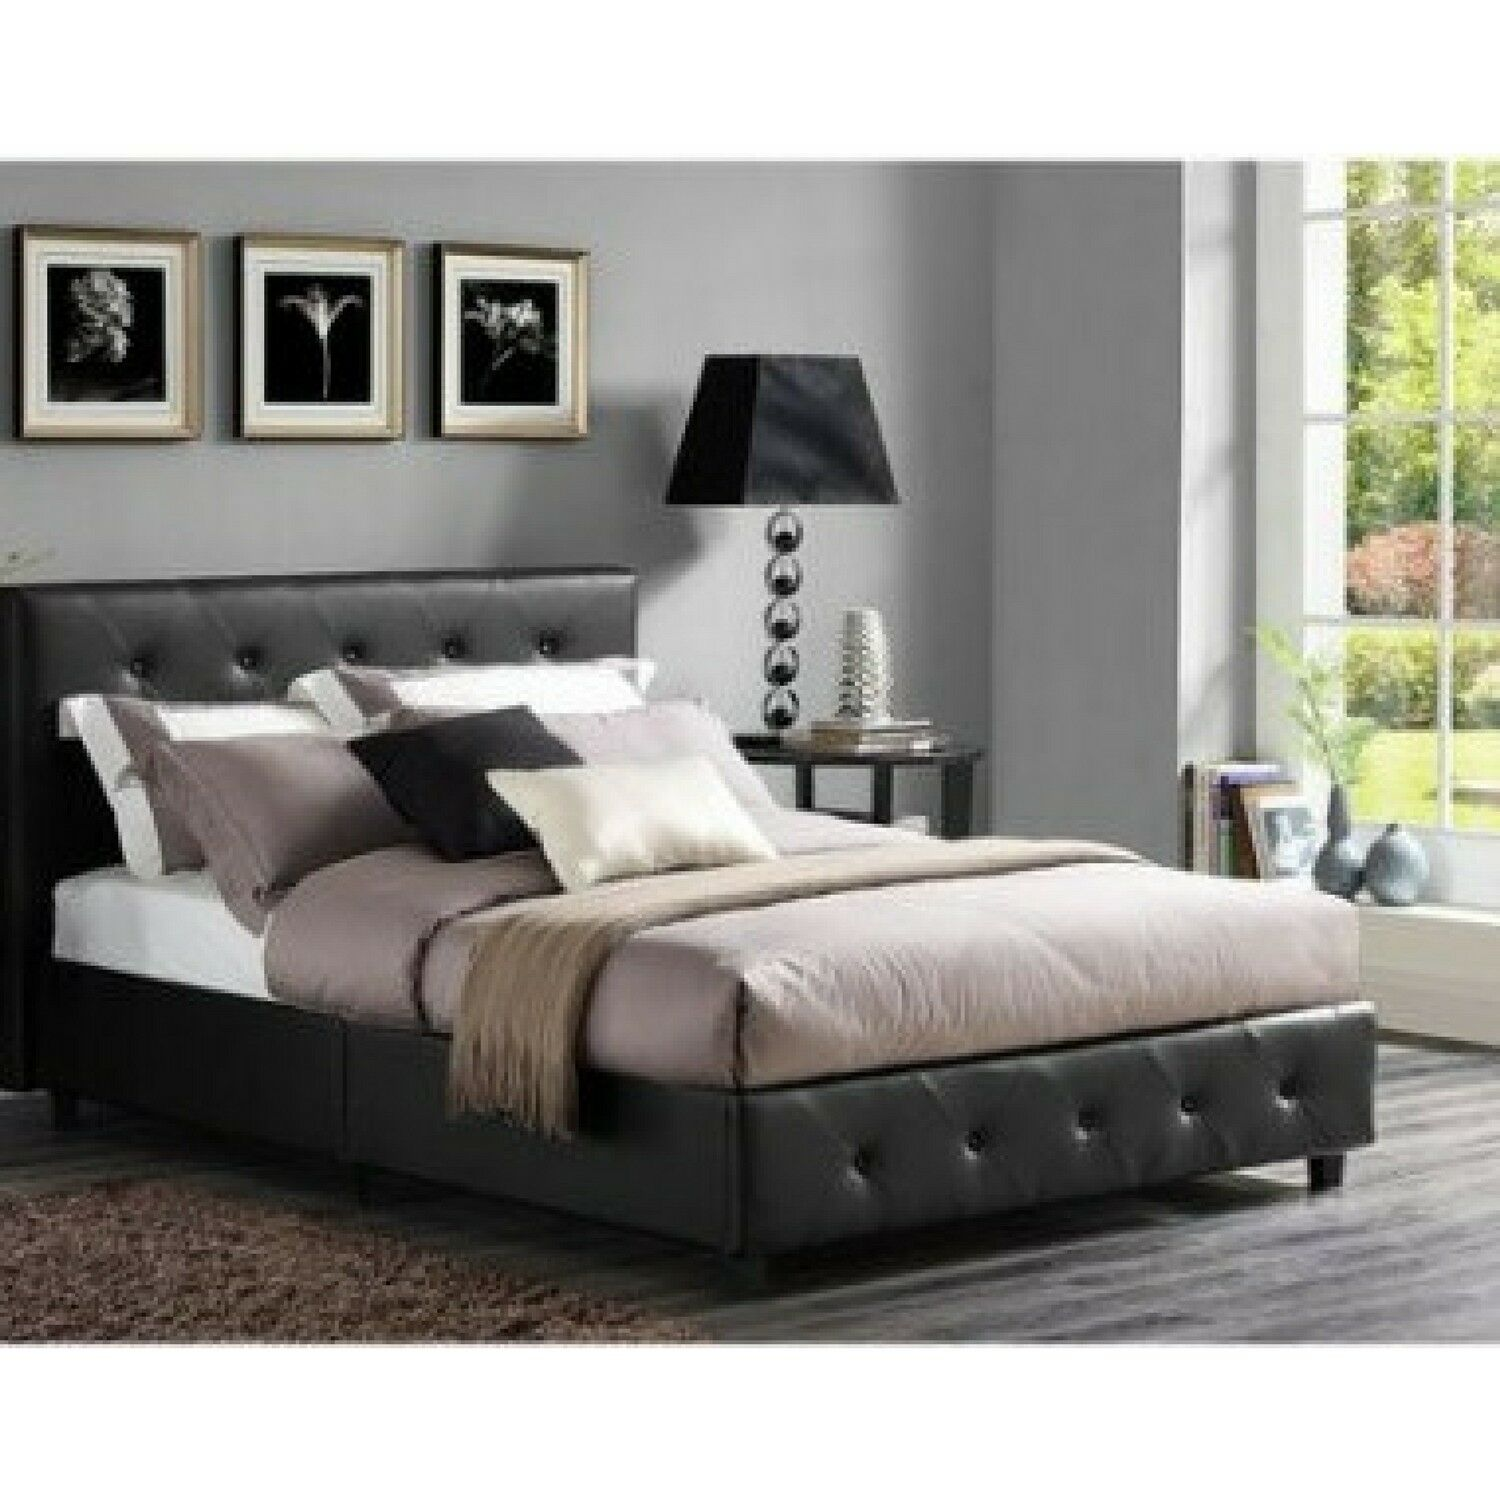 Bedroom Set Twin Size Black Modern Design Leather Furniture 2 Nightstand Tables For Sale Online